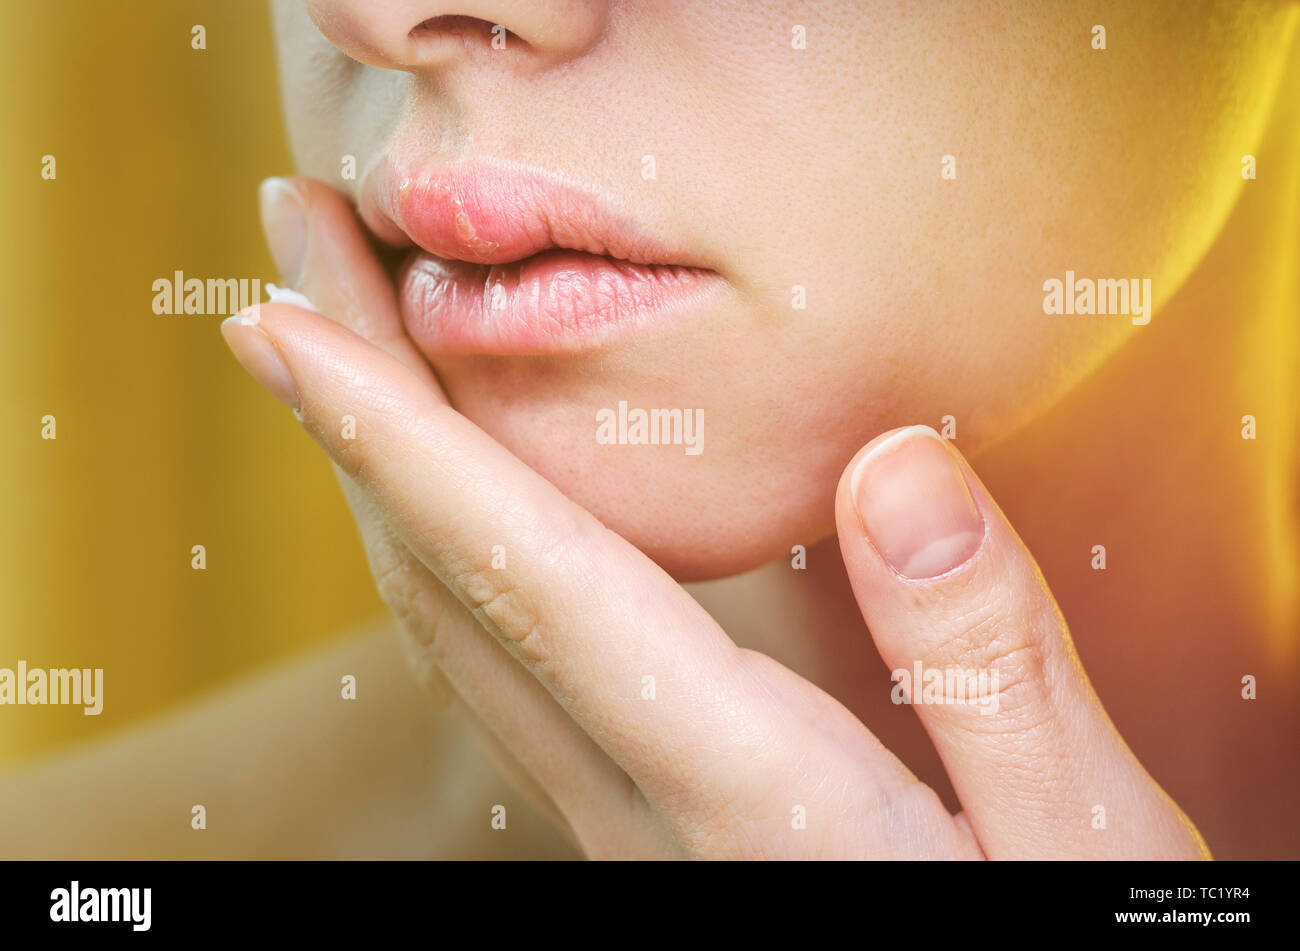 Scabs Stock Photos & Scabs Stock Images - Alamy